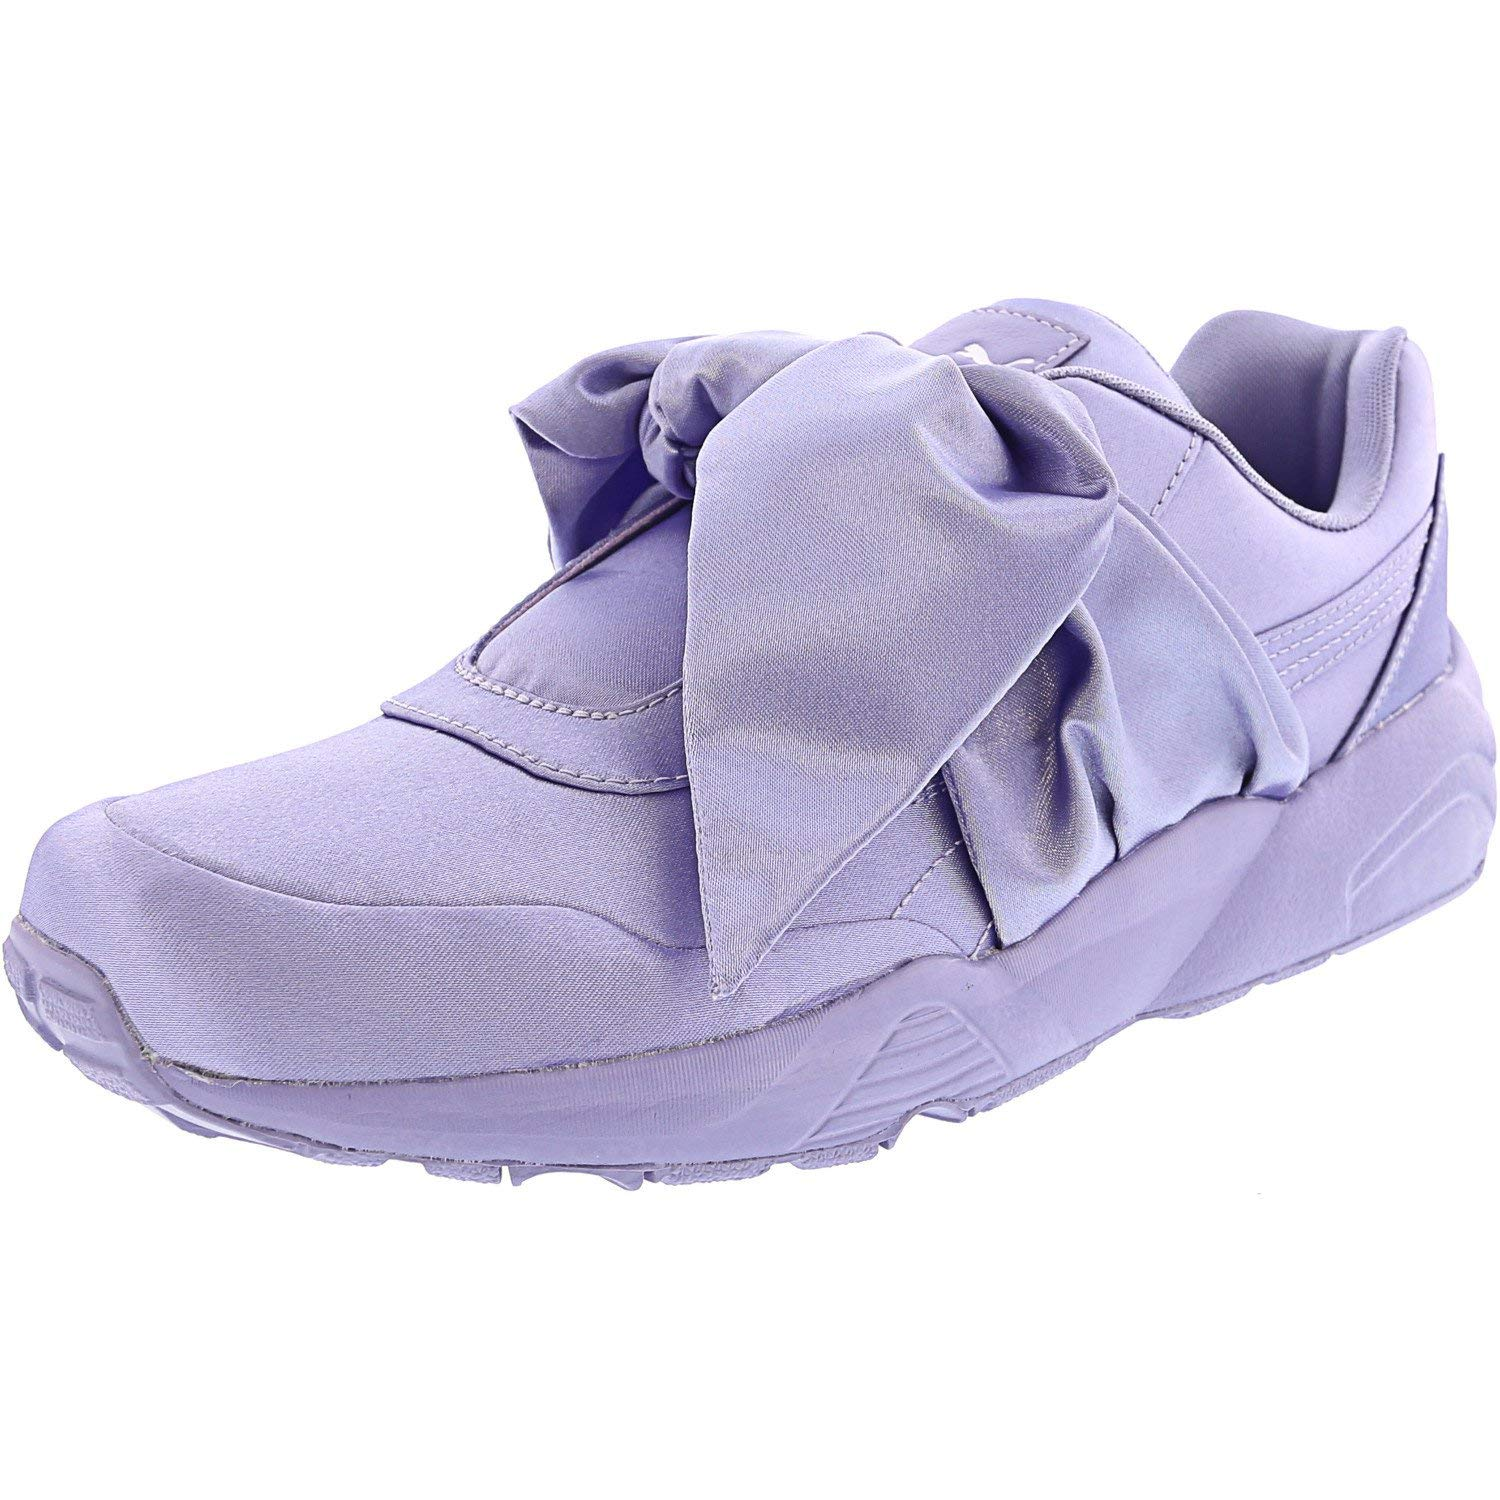 new product 9c4fd 9ad25 PUMA Womens Bow Sneaker Fenty by Rihanna